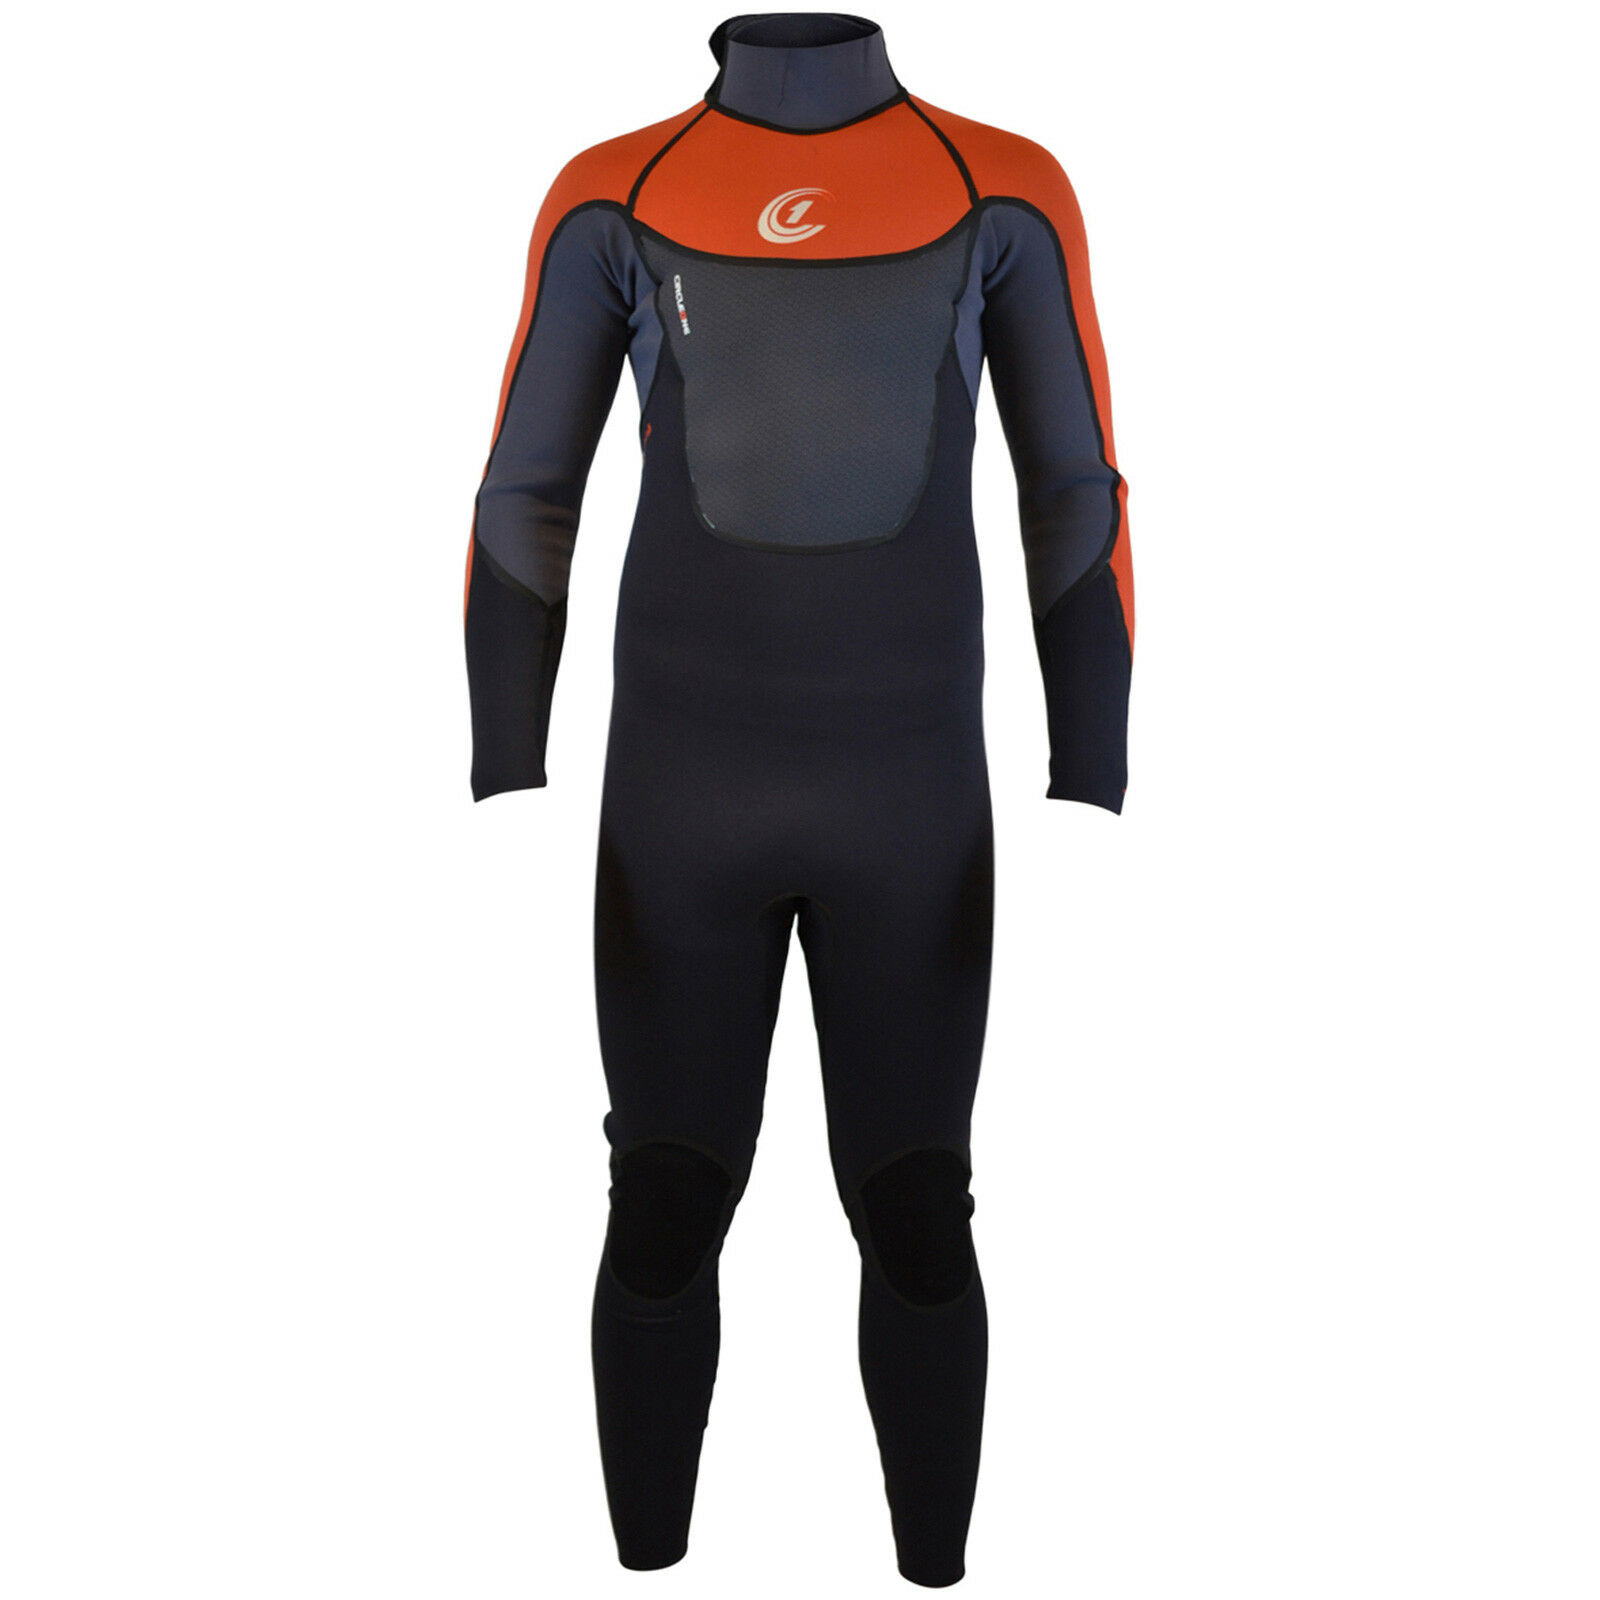 ICON Mens 3 2mm GBS SUMMER Wetsuit